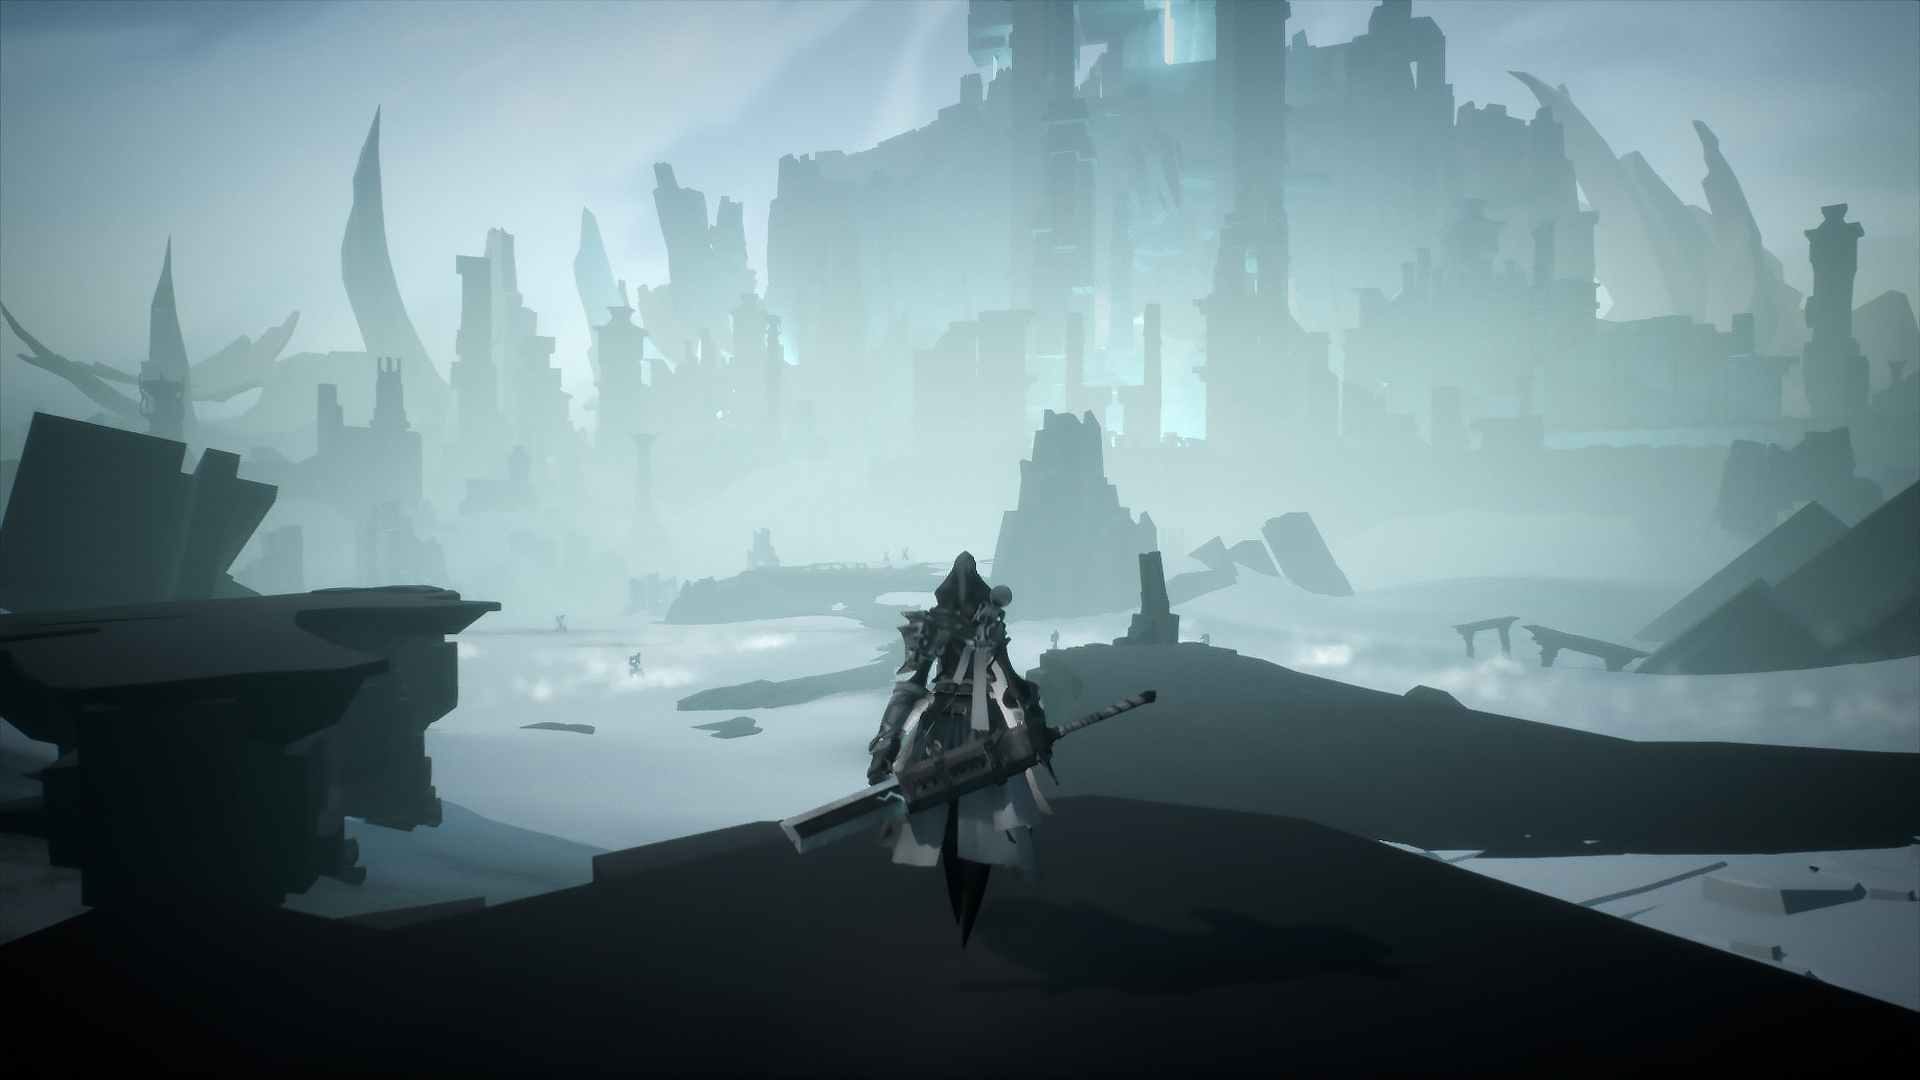 Shattered: Tale of the Forgotten King sors de son accès anticipé